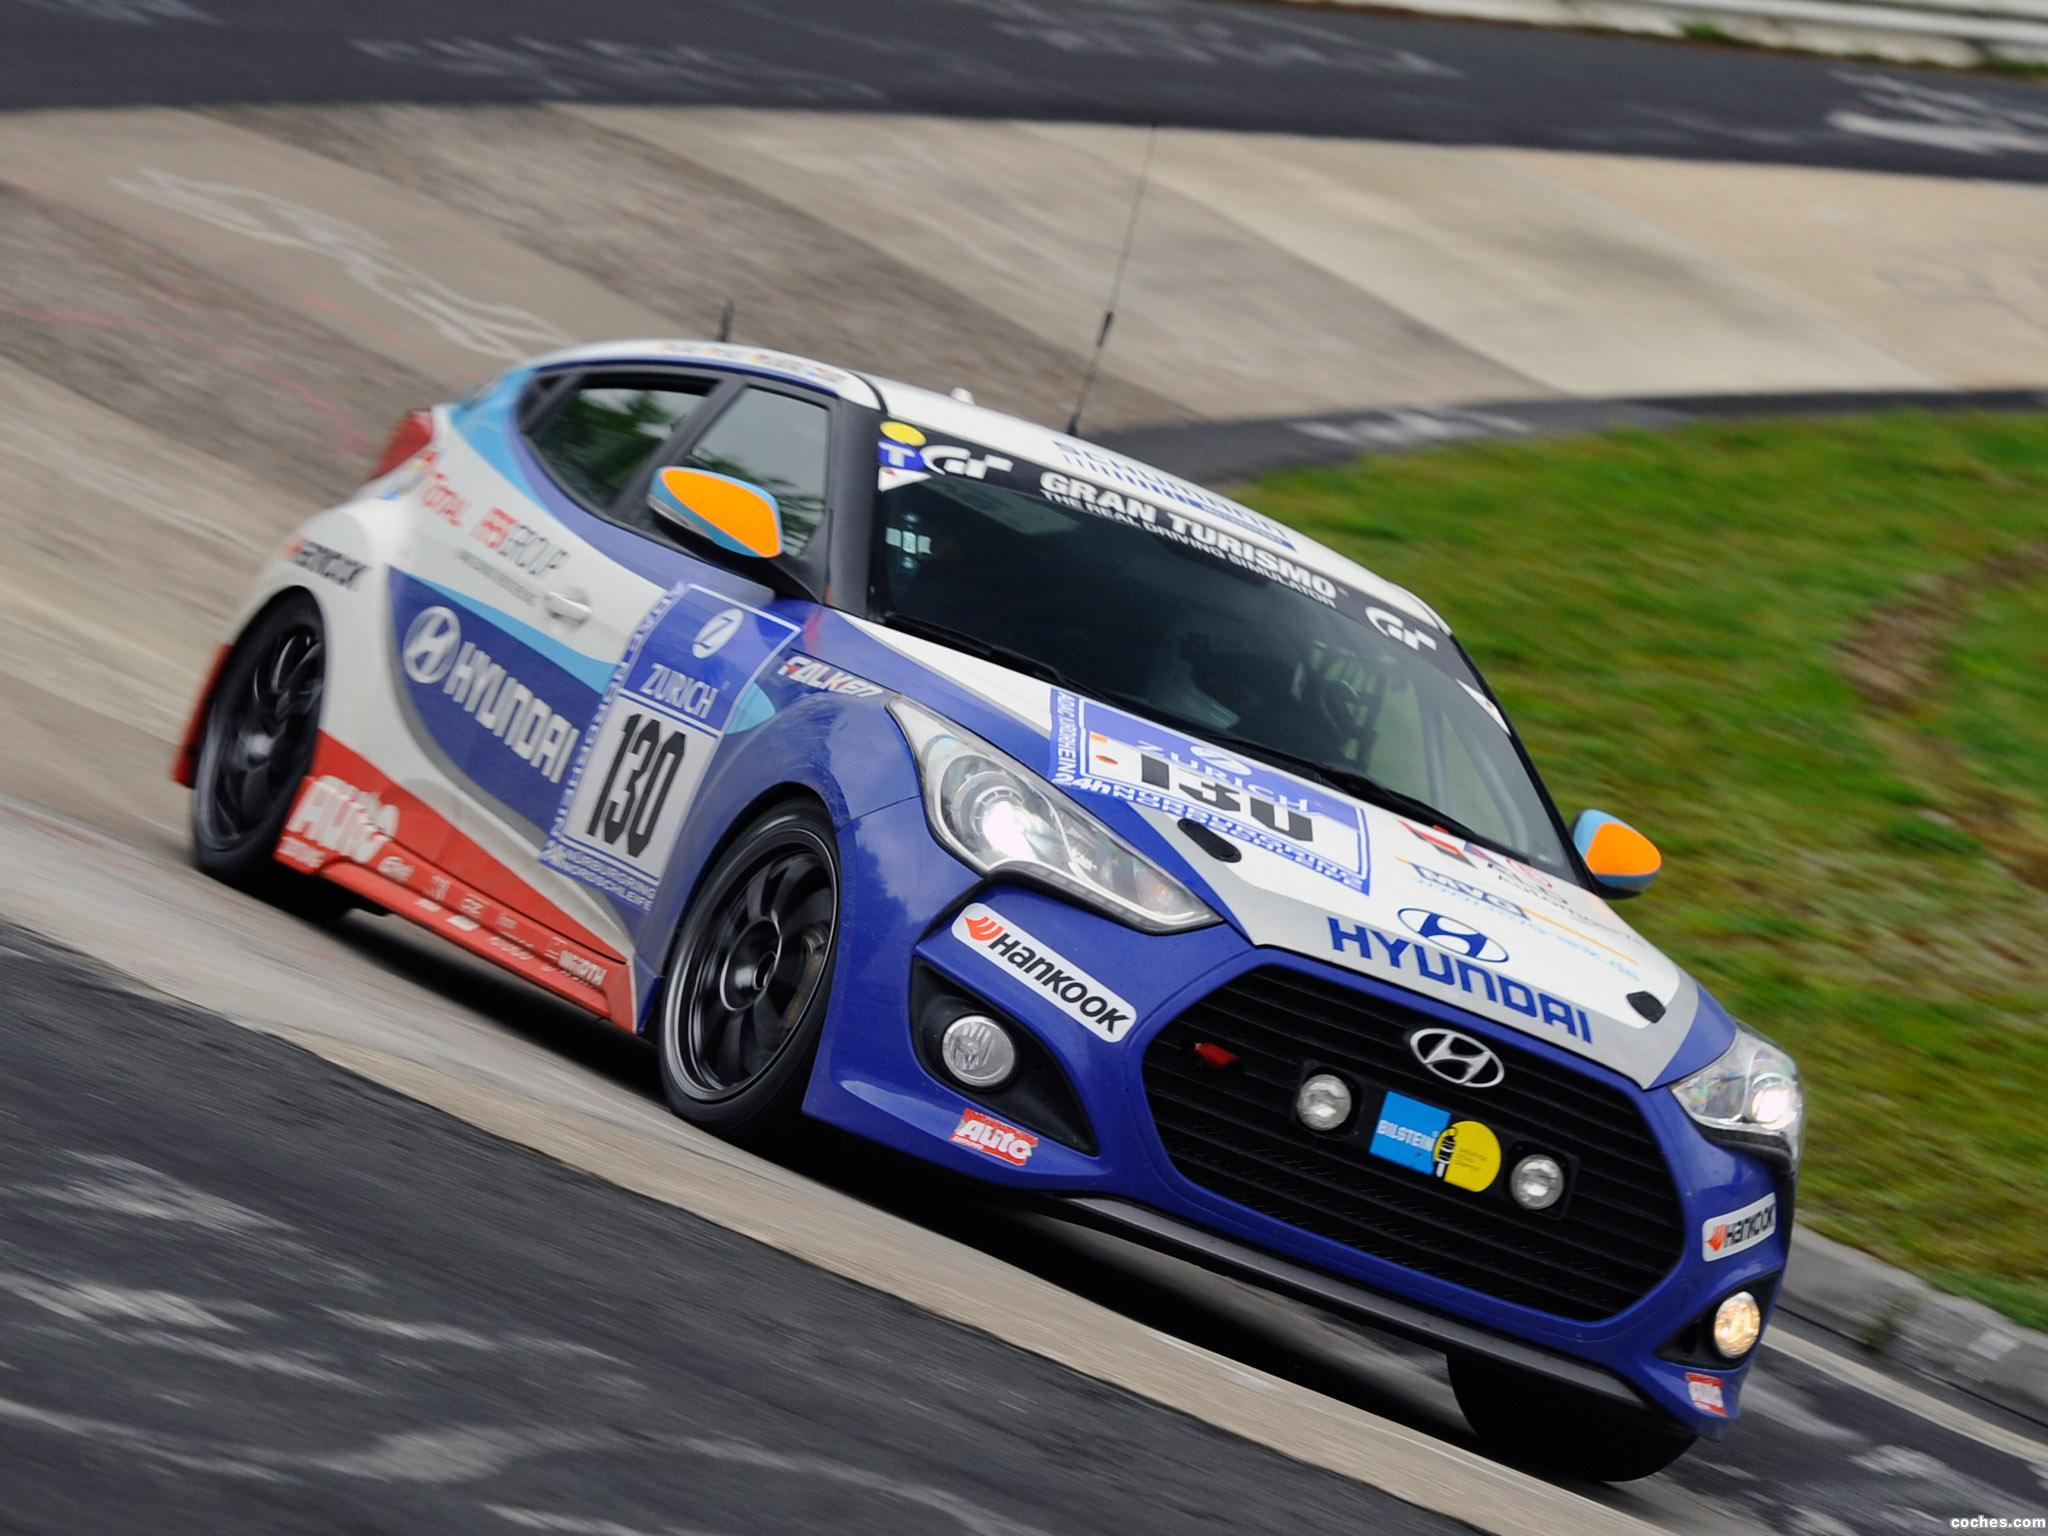 Foto 0 de Hyundai Veloster Turbo 24 Hour Nurburgring Race Car 2013